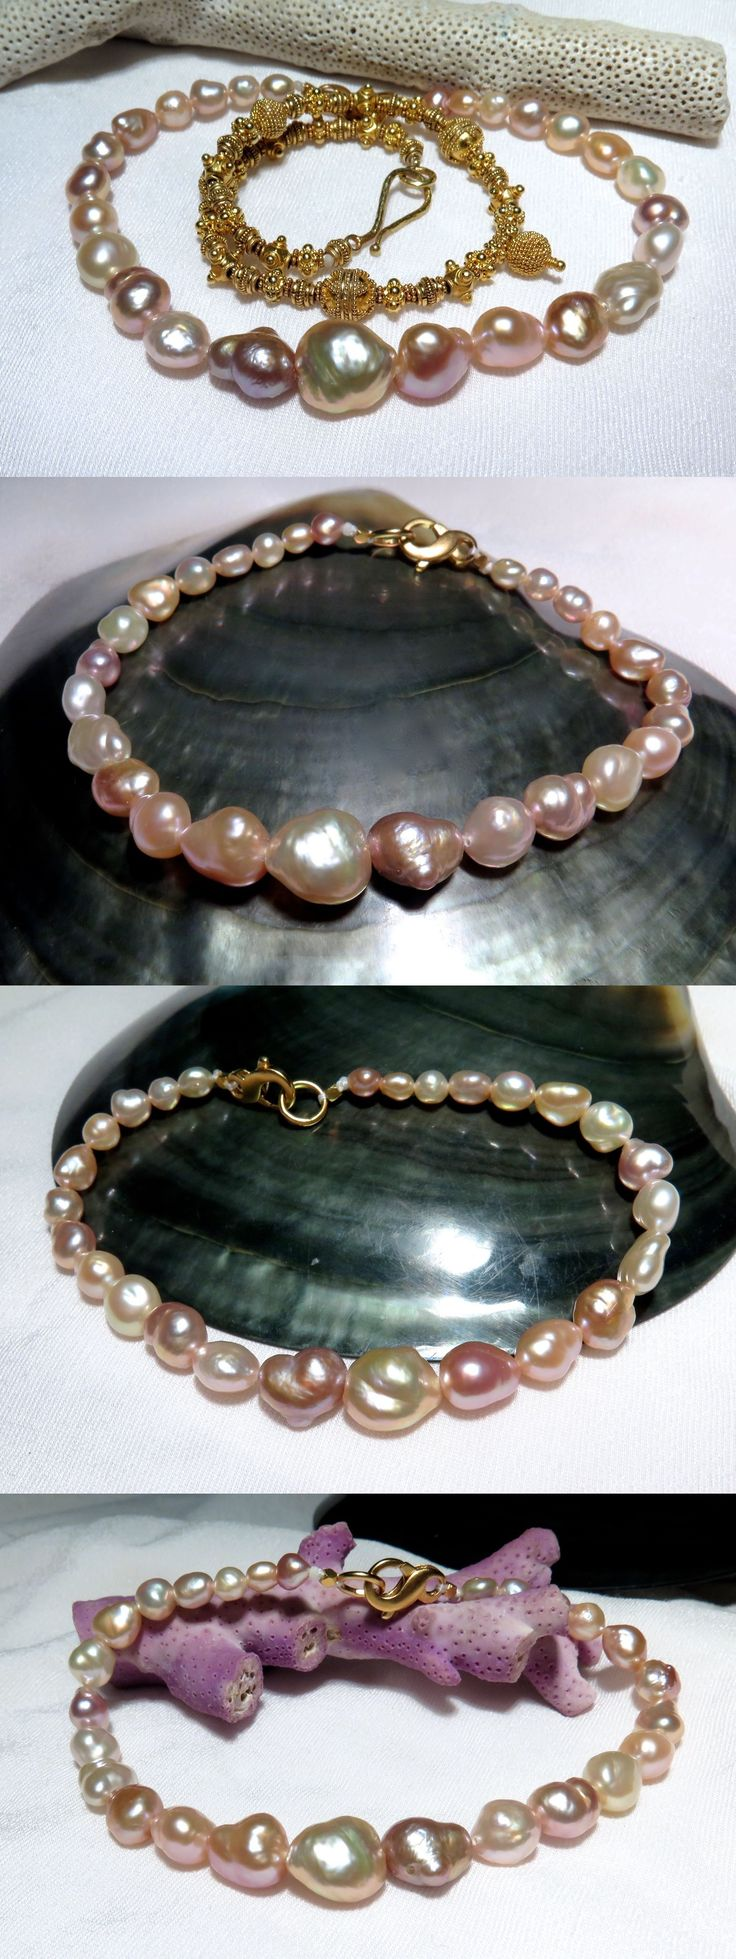 Pearl 164316: Exquisite Aaa+ Japan Kasumi 4.3-10Mm Pink Purple Apricot Keshi Pearl Bracelet 8 -> BUY IT NOW ONLY: $599 on eBay!